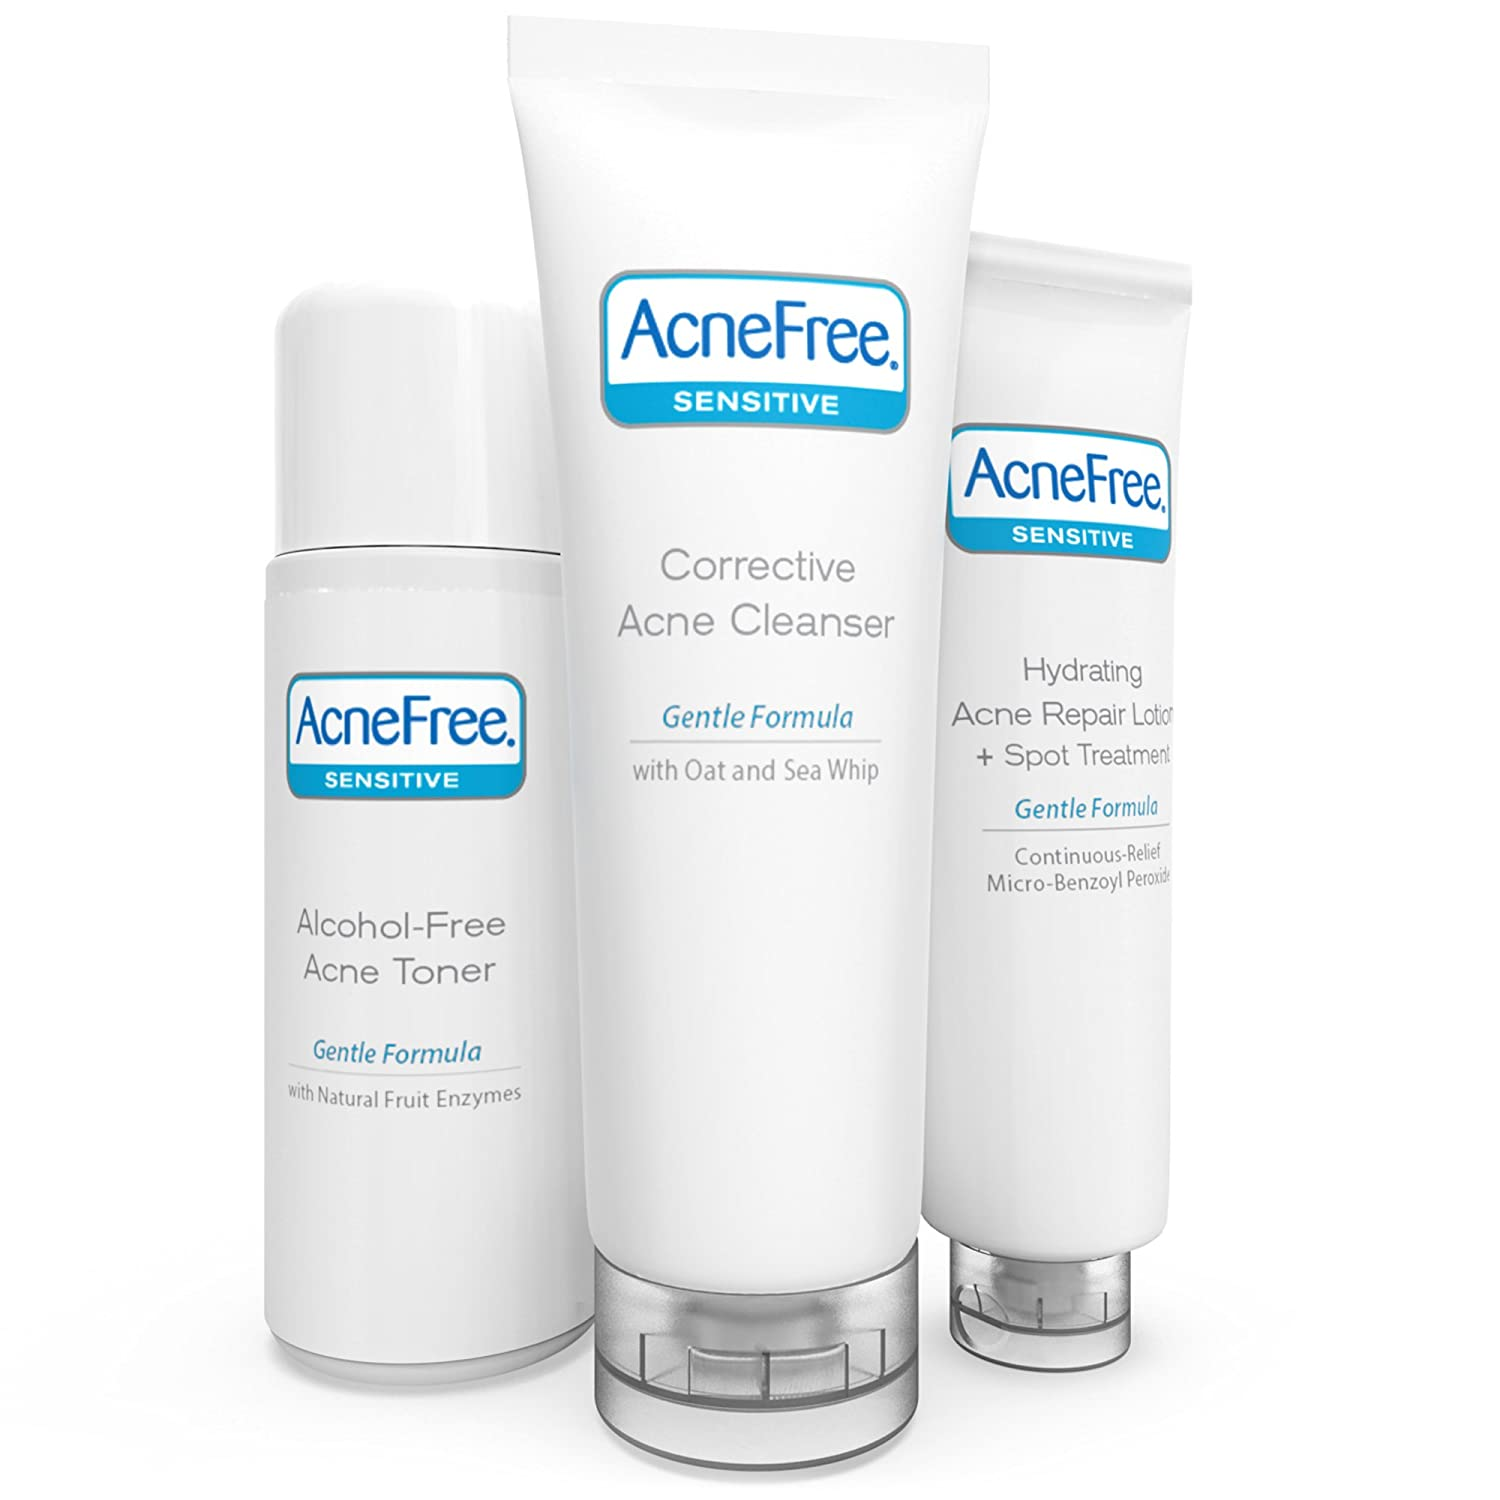 AcneFree 3 Step Acne Treatment Kit - Salicylic Acid Acne Face Wash and Alcohol-Free Toner with Benzoyl Peroxide Lotion - Anti Acne Solution for Teenagers and Adults - For Sensitive Skin 301871612034